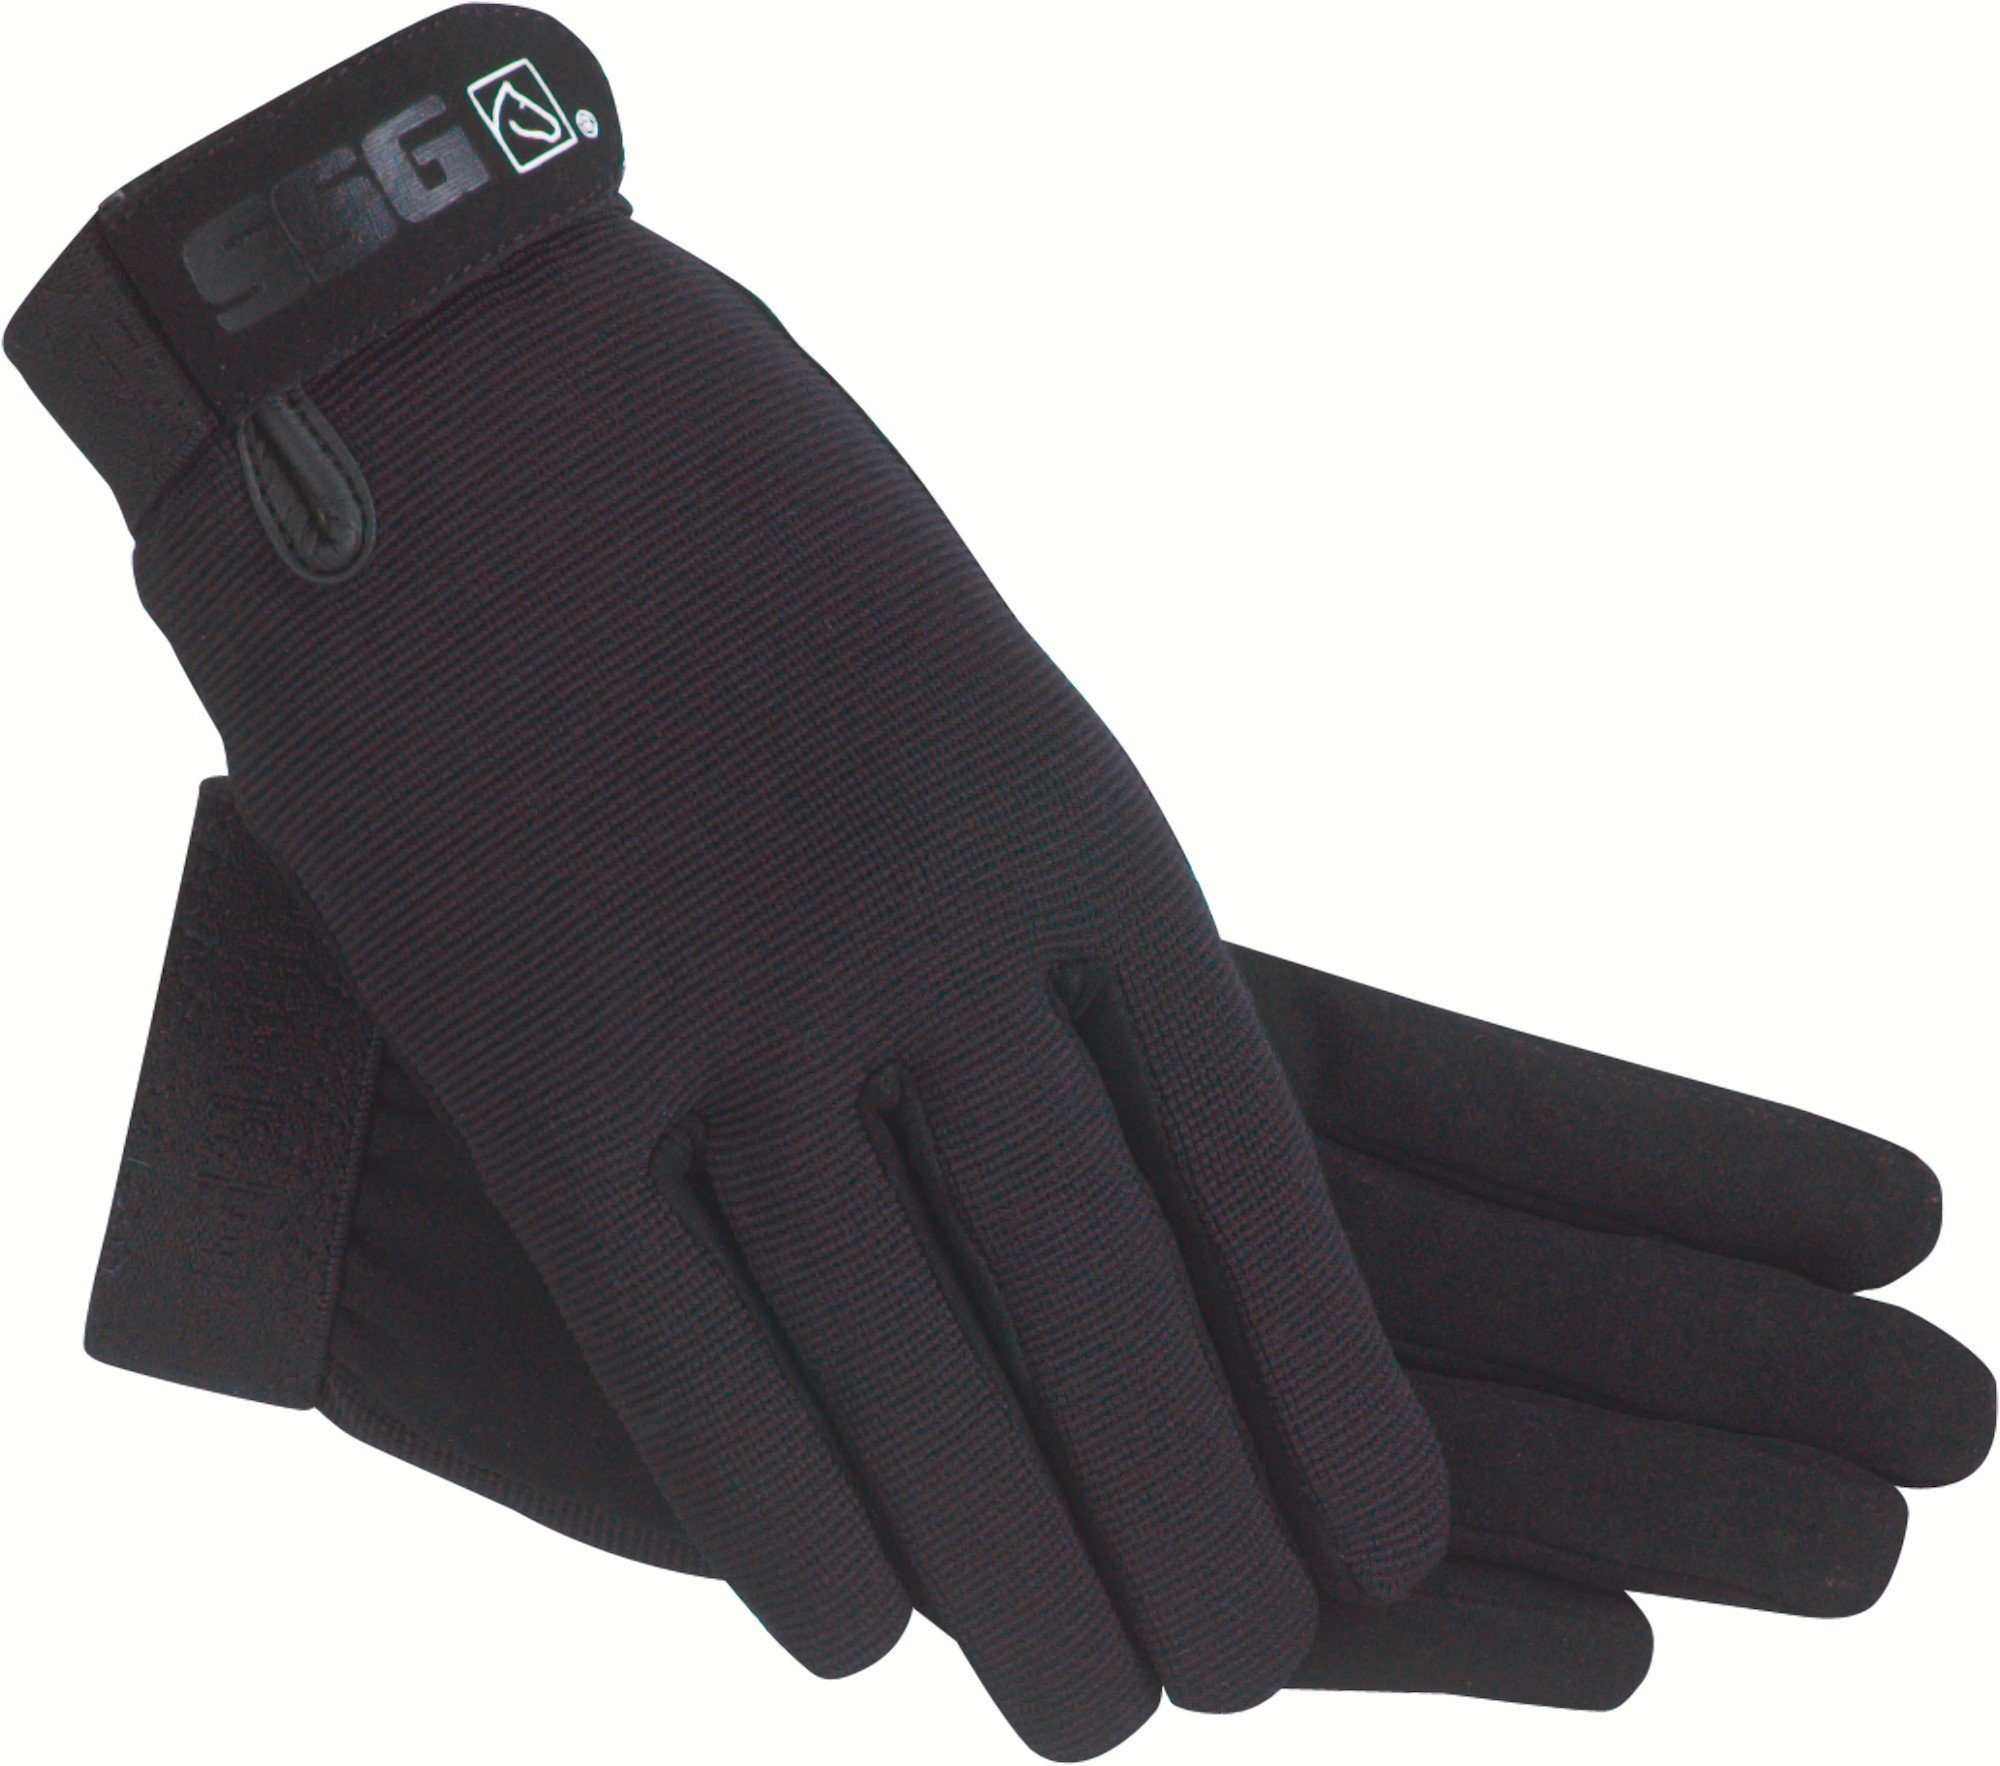 SSG All Weather Riding Gloves Childs Black/Black